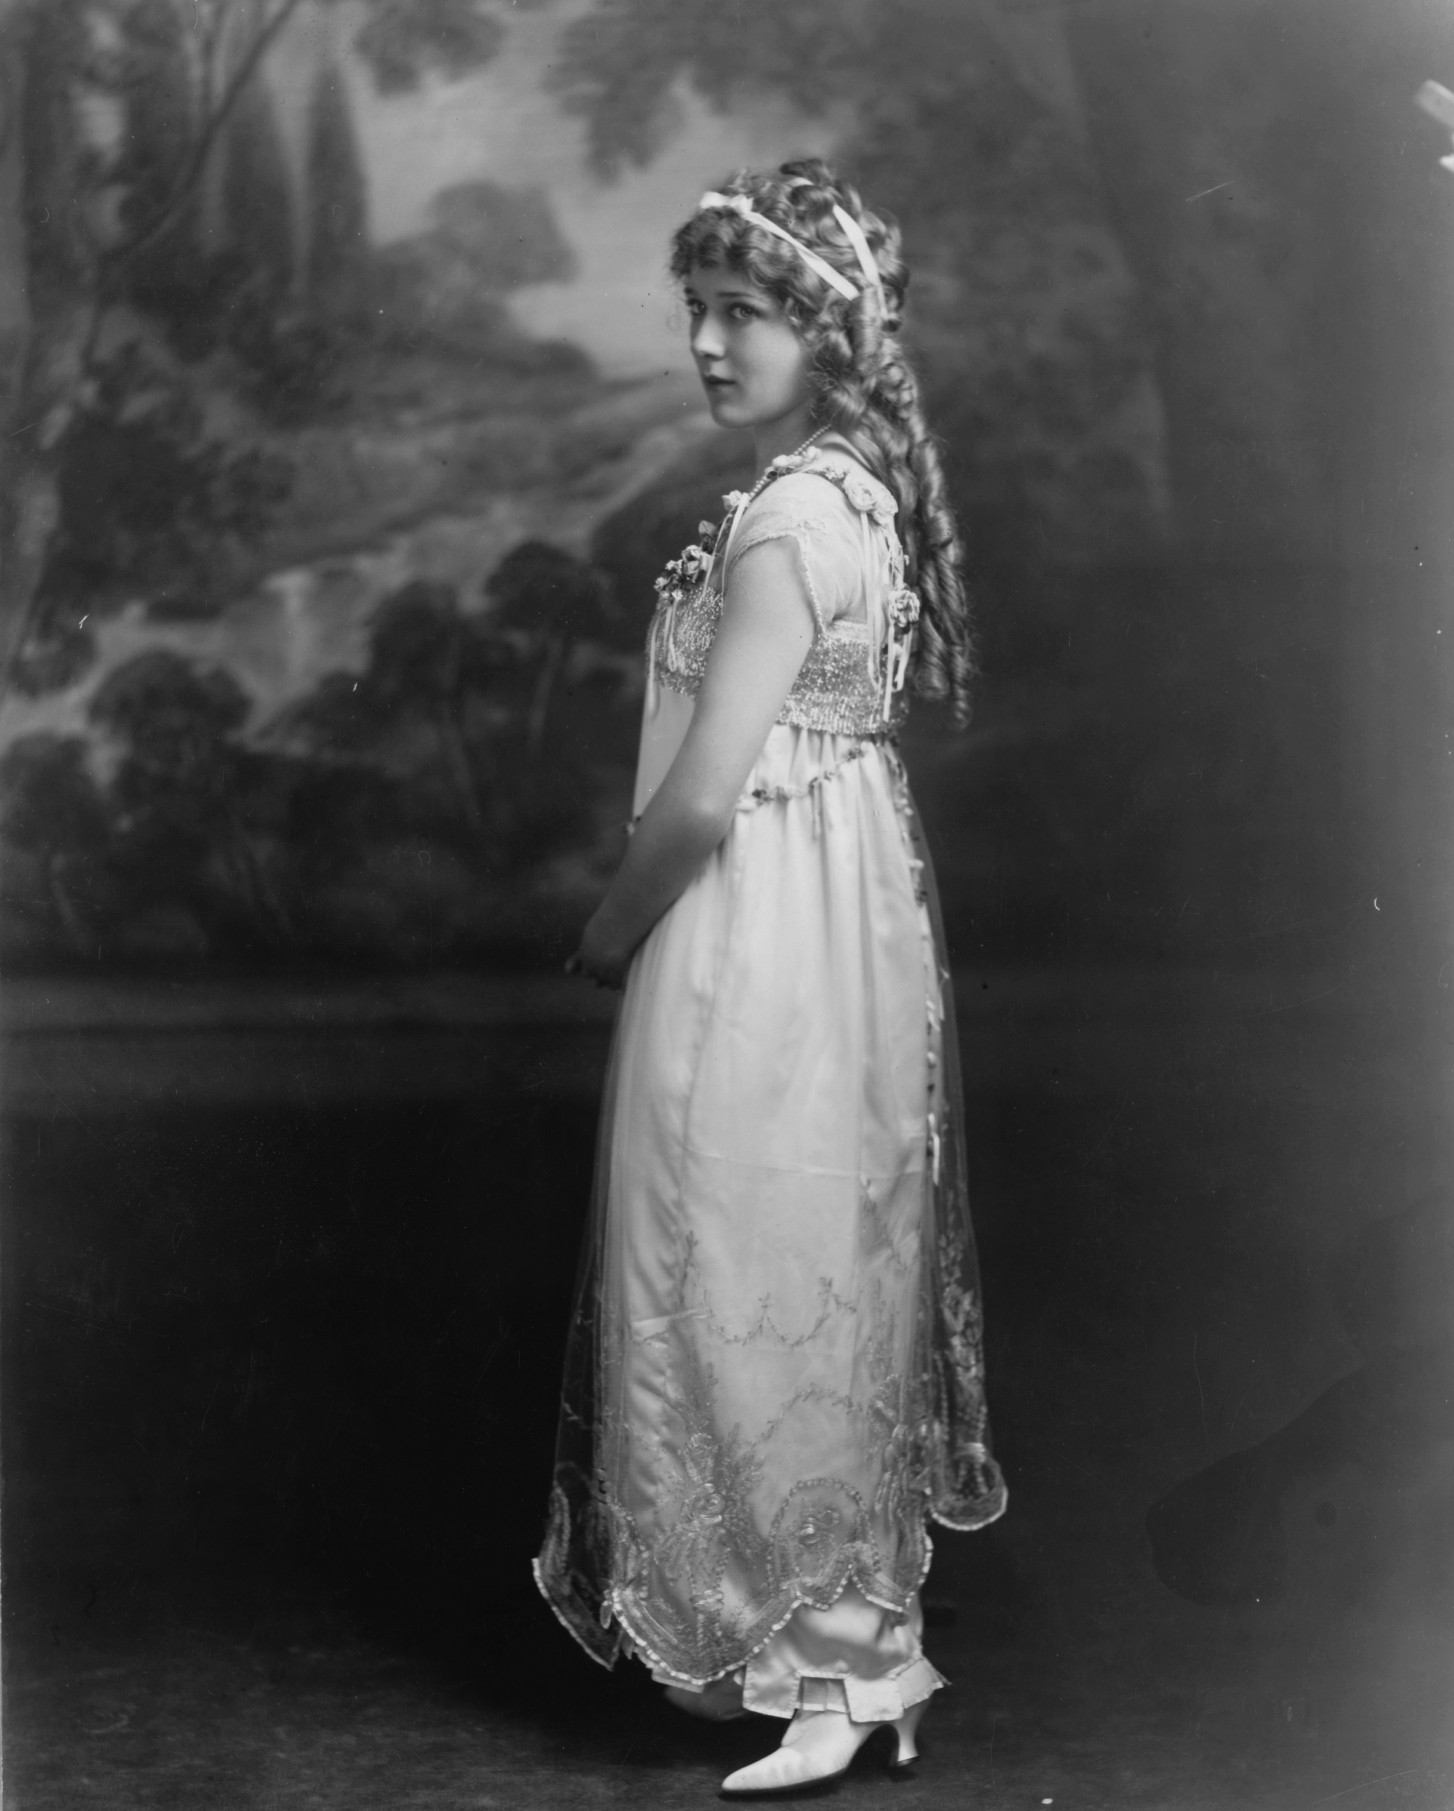 http://upload.wikimedia.org/wikipedia/commons/3/30/Mary_Pickford_II.png